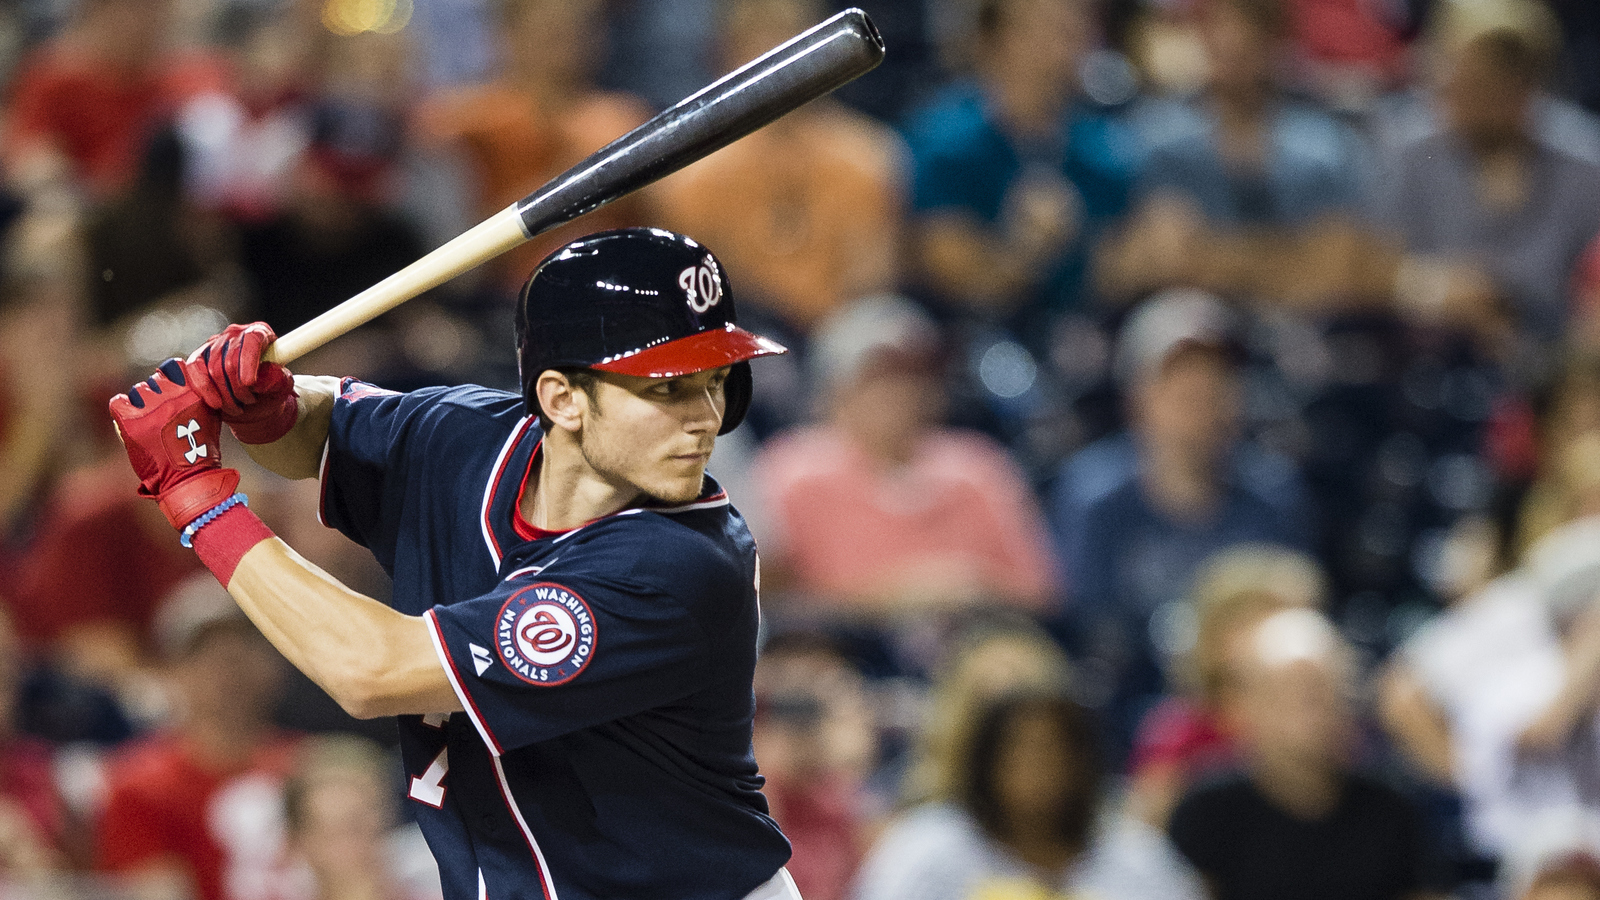 Fantasy Baseball Prospect Watch: Will the Nats make a change at SS?